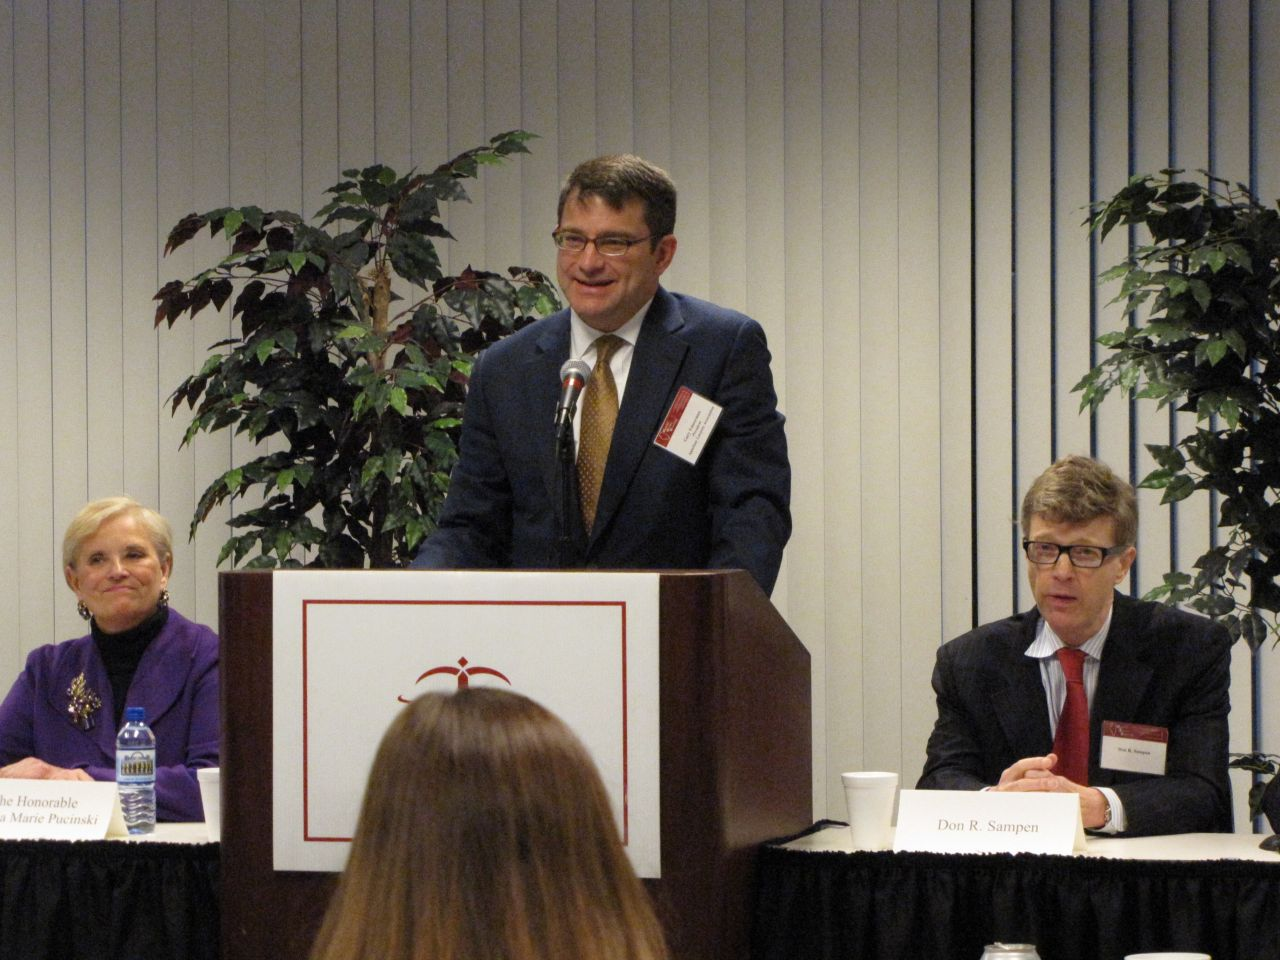 Appellate Lawyers Association President Gary Feinerman introduces the candidates.